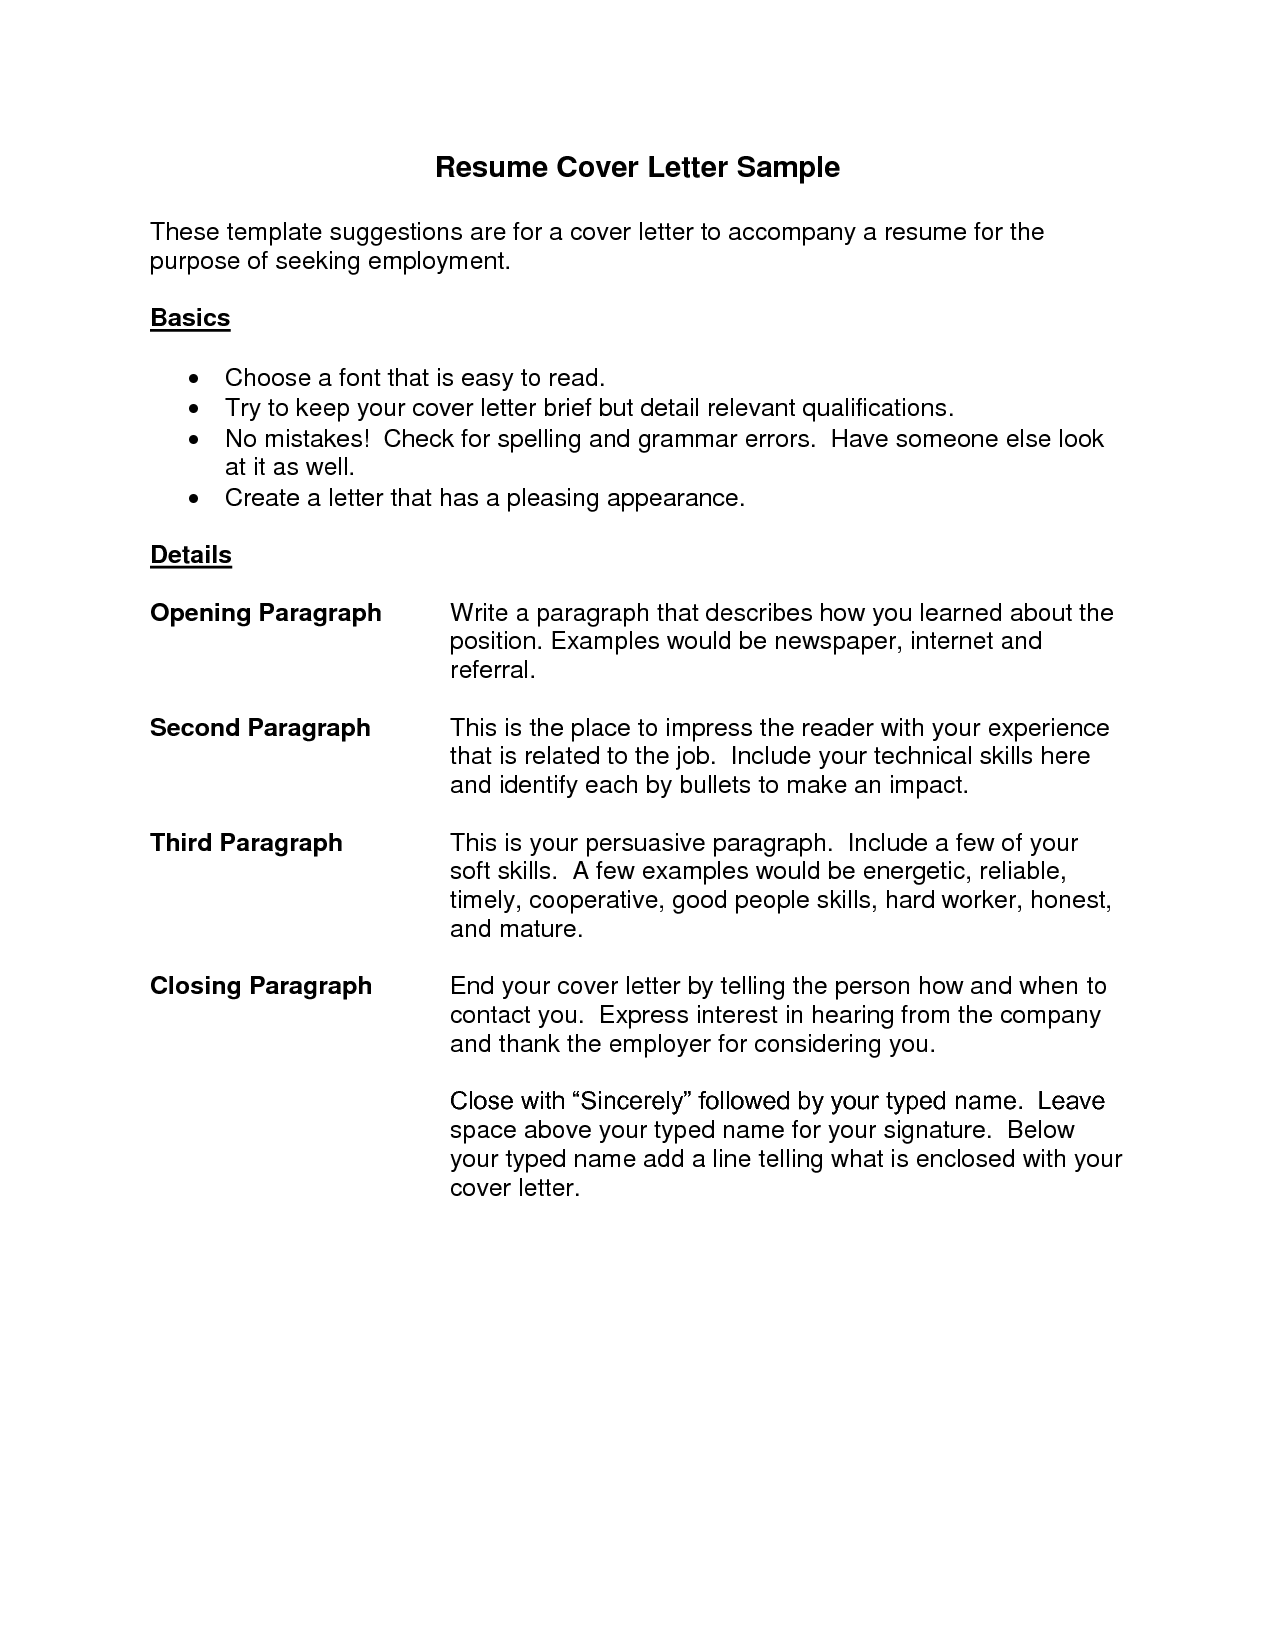 jobstreet cover letters application how to add